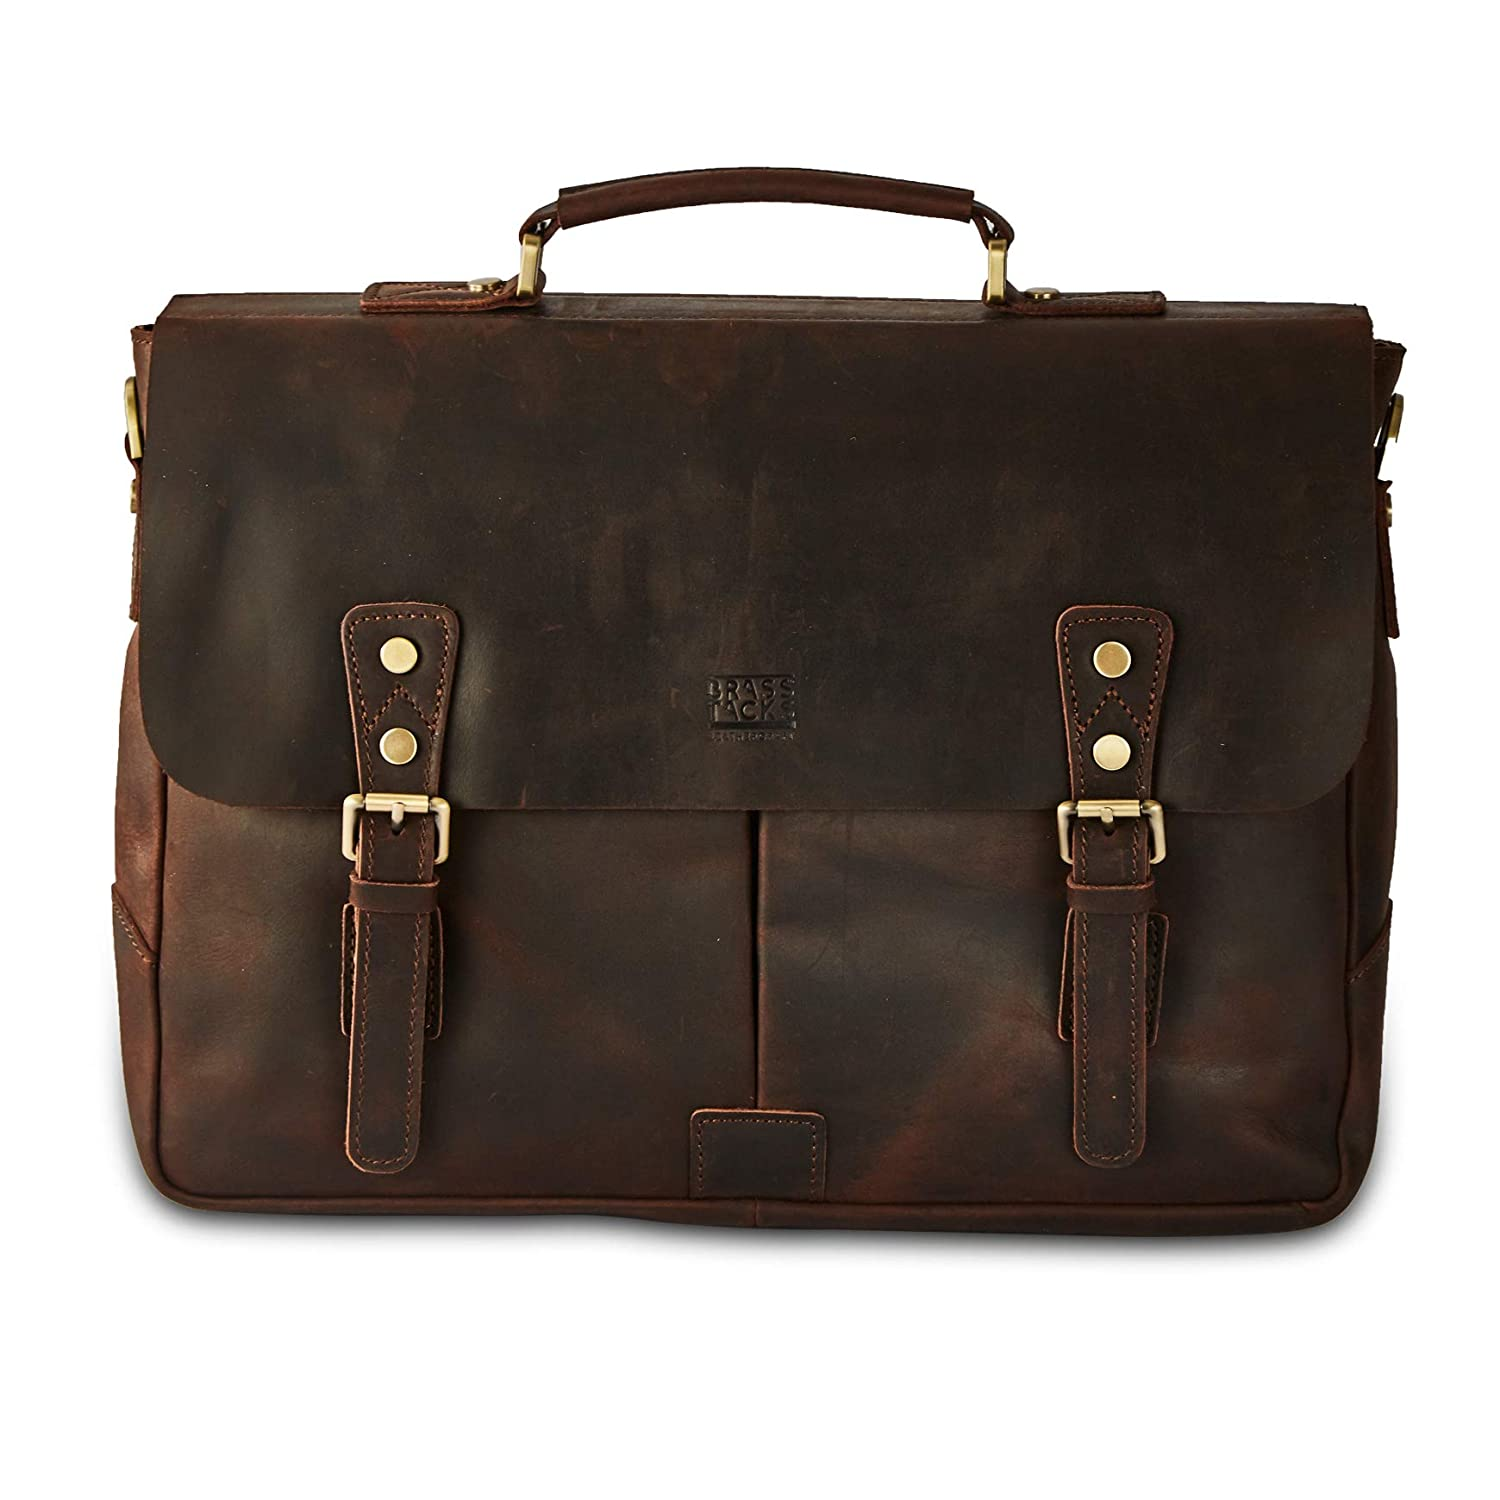 BRASS TACKS Leathercraft LUGGAGE メンズ US サイズ: One_Size カラー: ブラウン   B07FKPP8FB